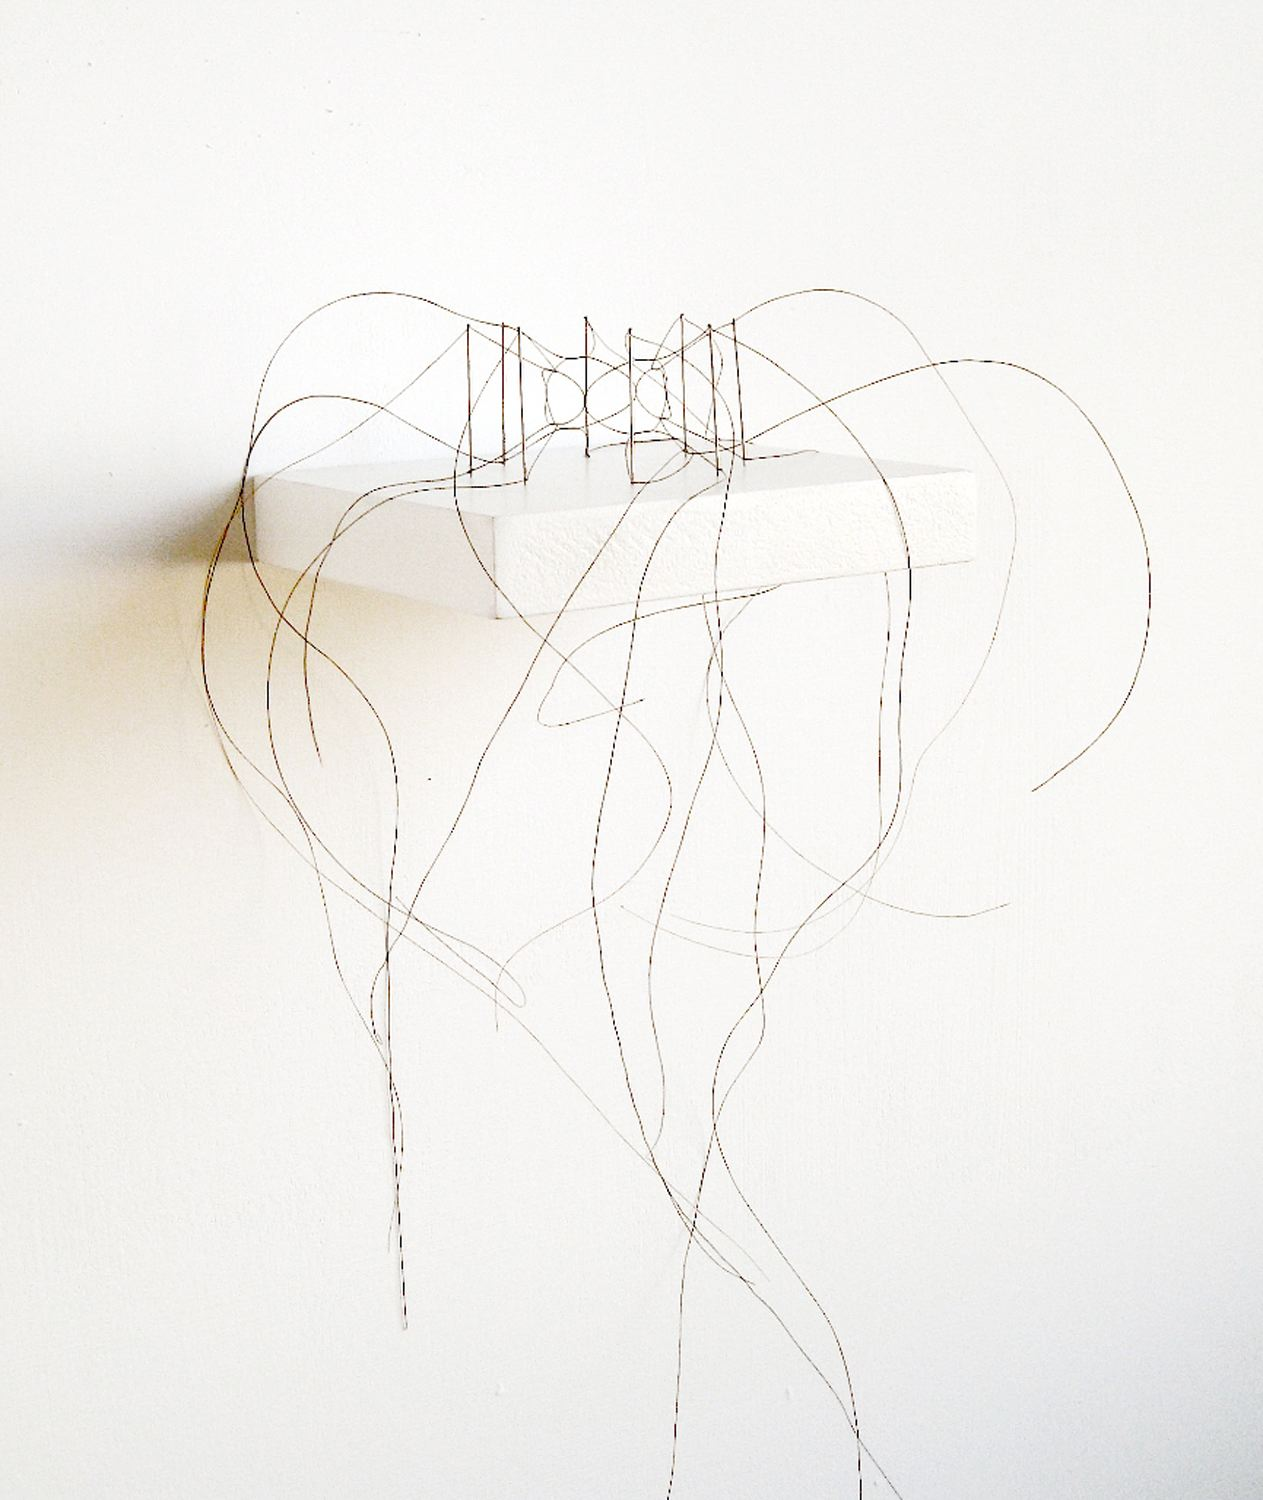 Christiane Löhr  (B. 1965)  Kleine Haararbeit / Little Hair Work , 2012 Horsehair, needles Circa: 18 1/2 x 13 1/2 x 7 1/2 inches (47 x 34 x 19 cm) Base: 3/4 x 4 3/4 x 4 inches (1.9 x 12.1 x 10.2 cm)